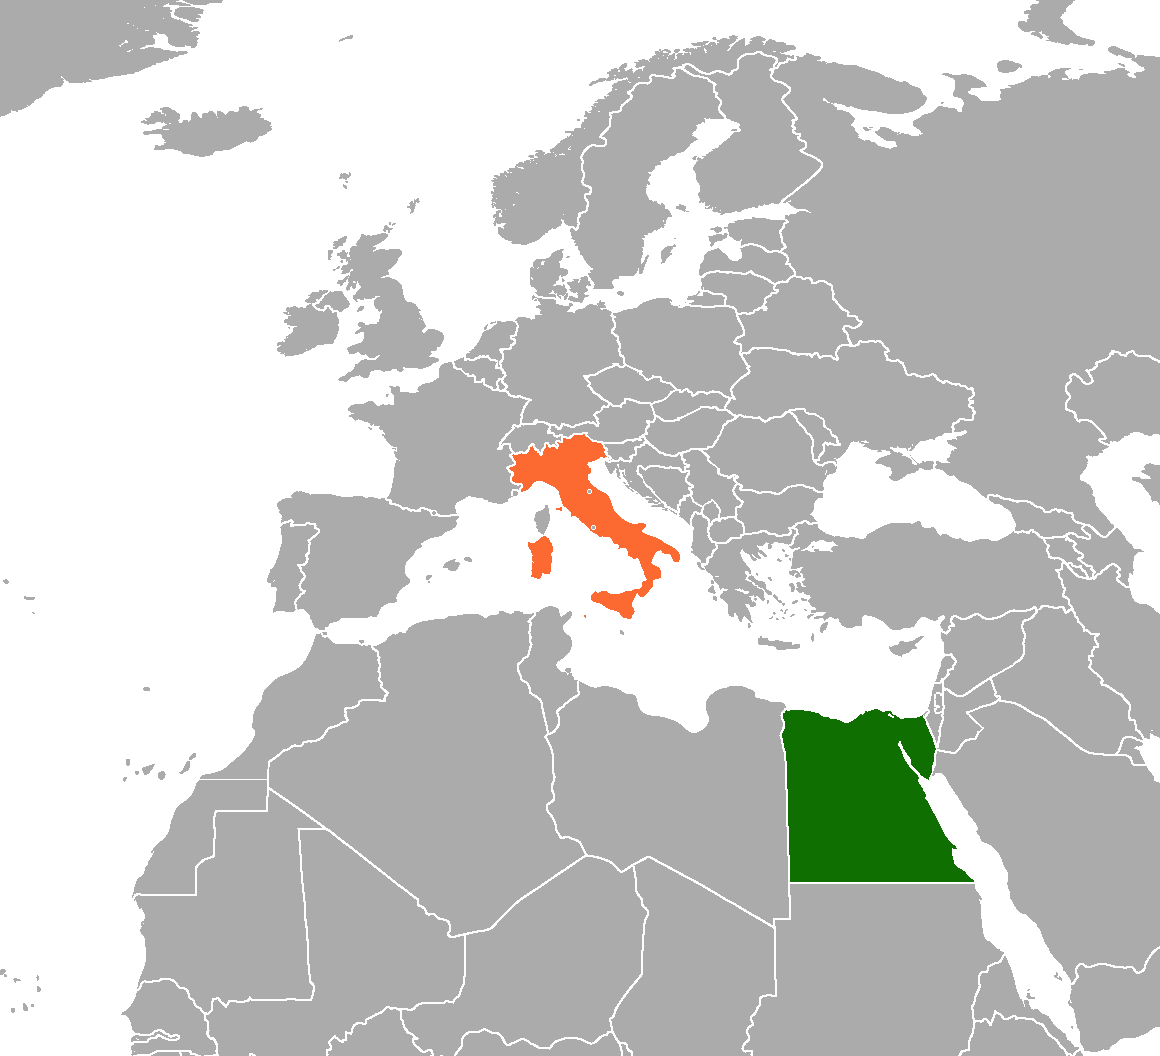 Italy On Map Of World.Egypt Italy Relations Wikipedia